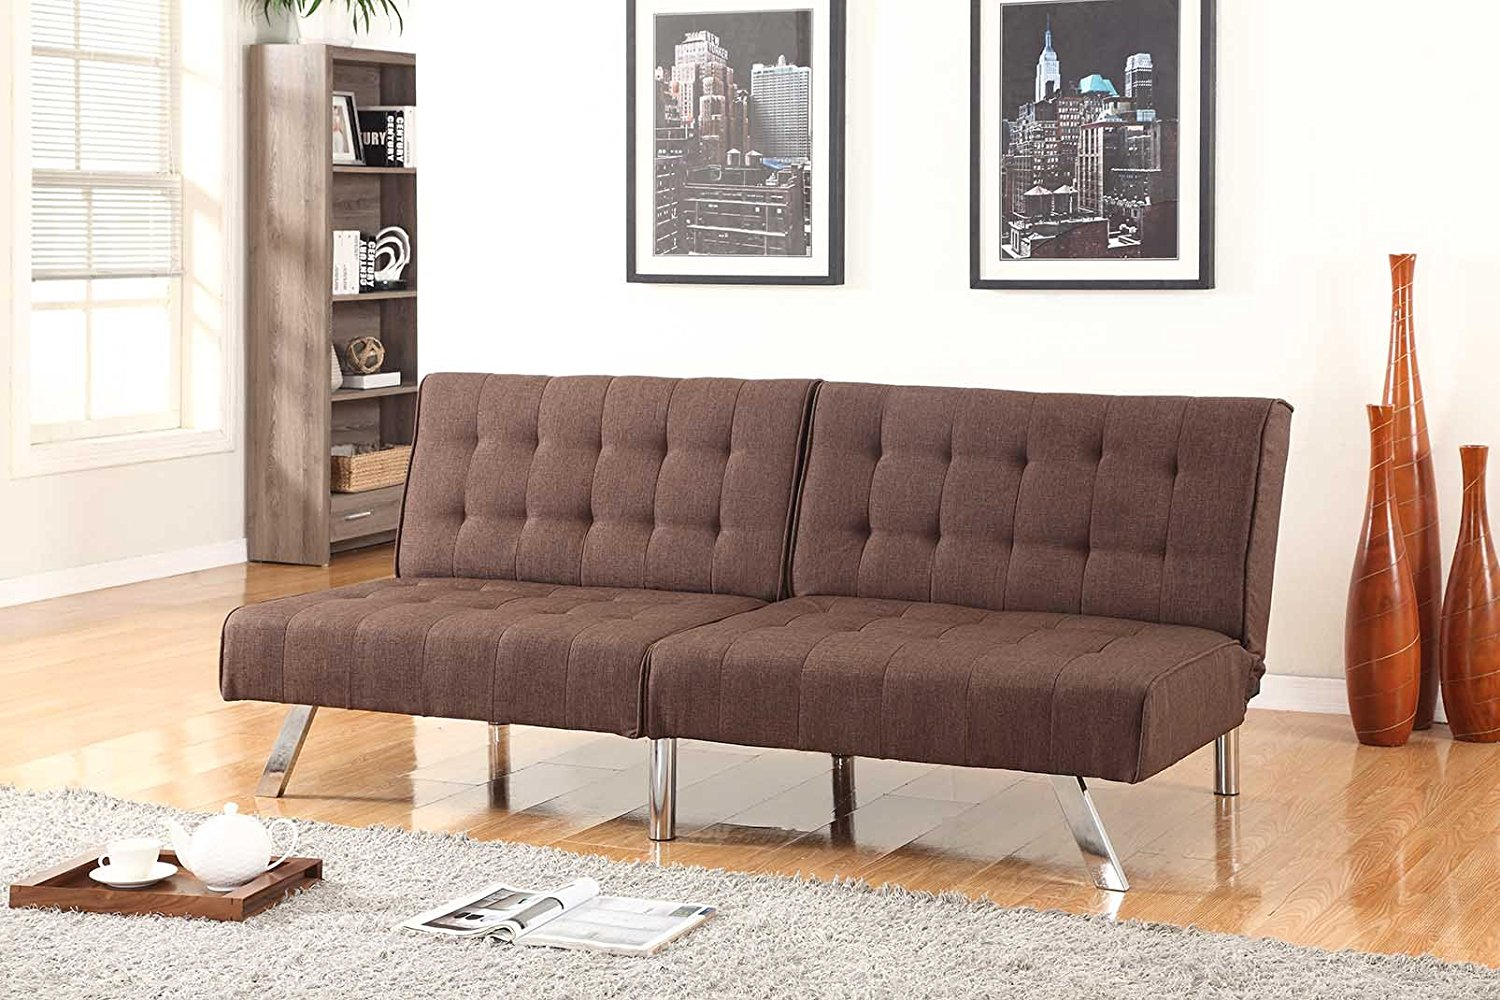 "Chocolate Brown Linen With Split Back Adjustable Klik Klak Sofa Futon Bed Sleeper Convertible Quality 275brown_19 77"" Wide"